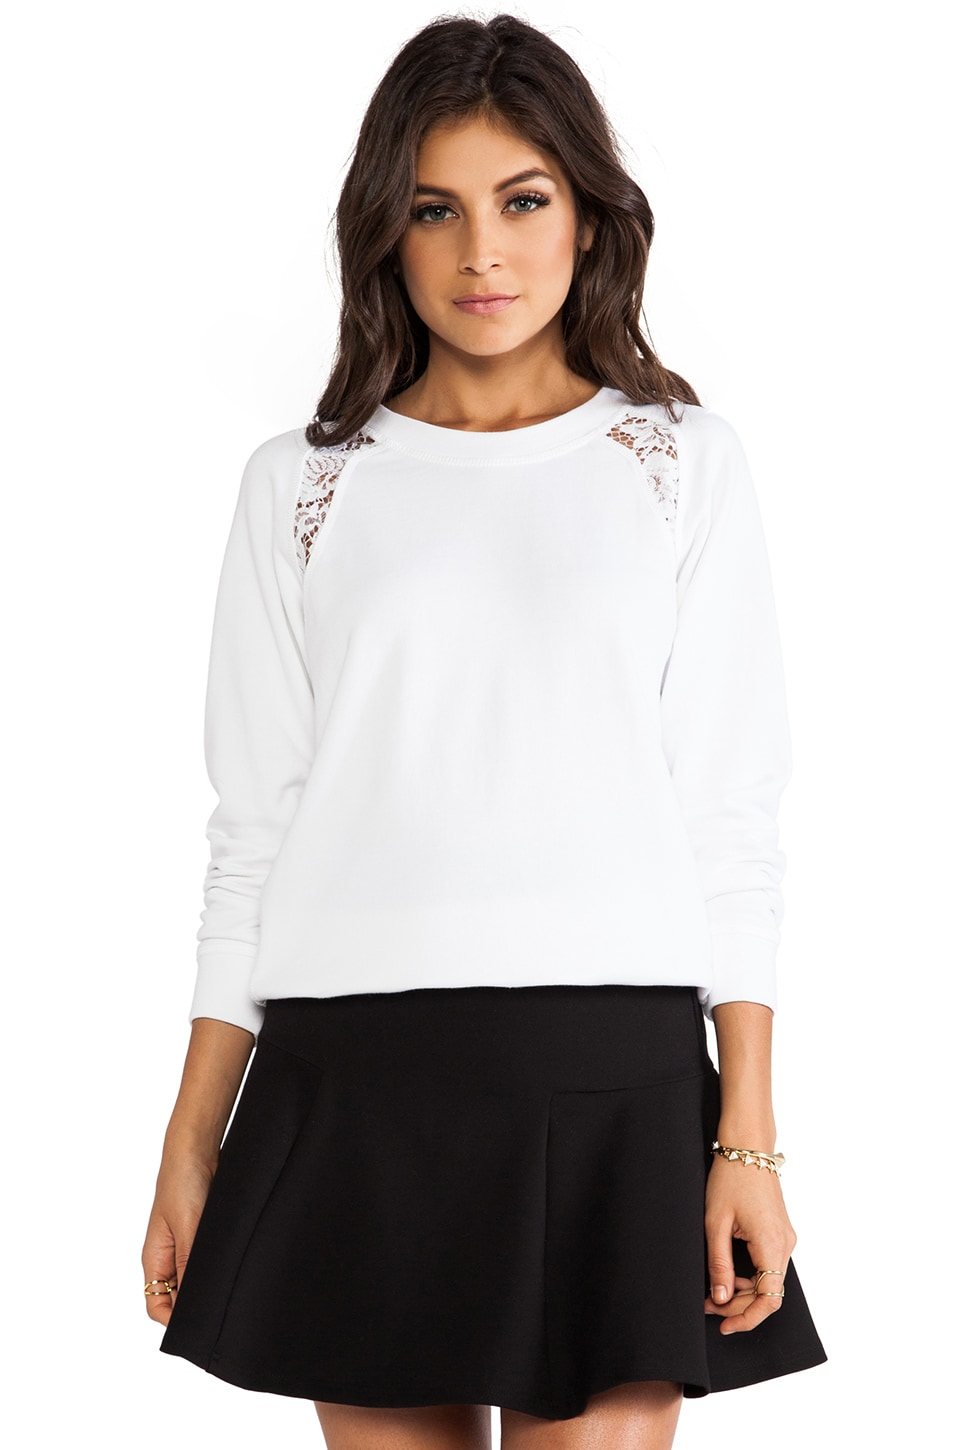 Rebecca Taylor Sweatshirt in Snow White